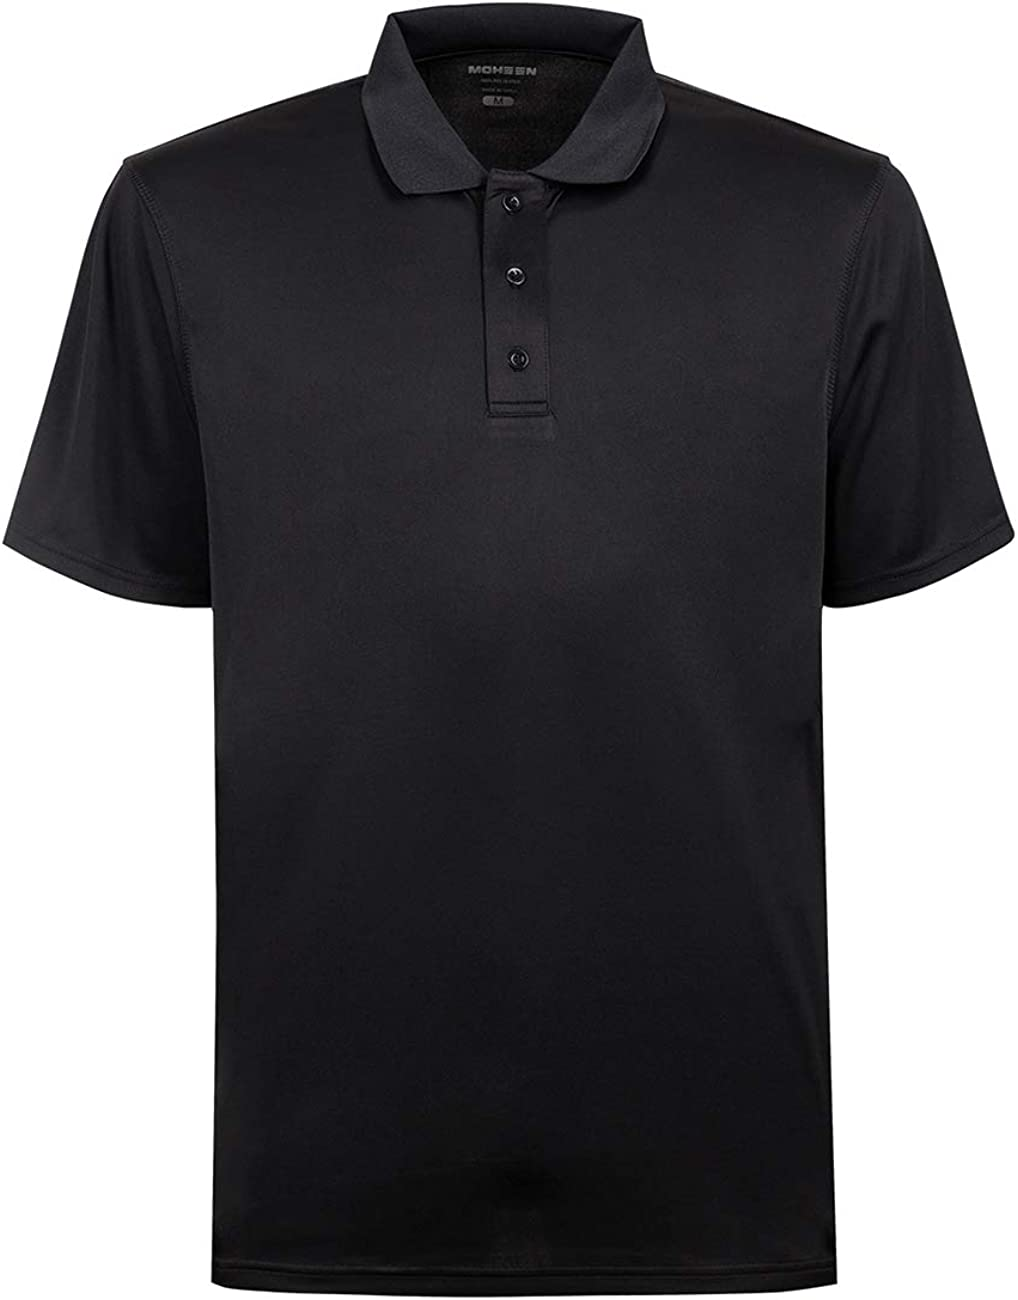 Miami Mall OFFicial mail order Corna Men's Moisture Wicking Performance Golf Sleeve Short Polo